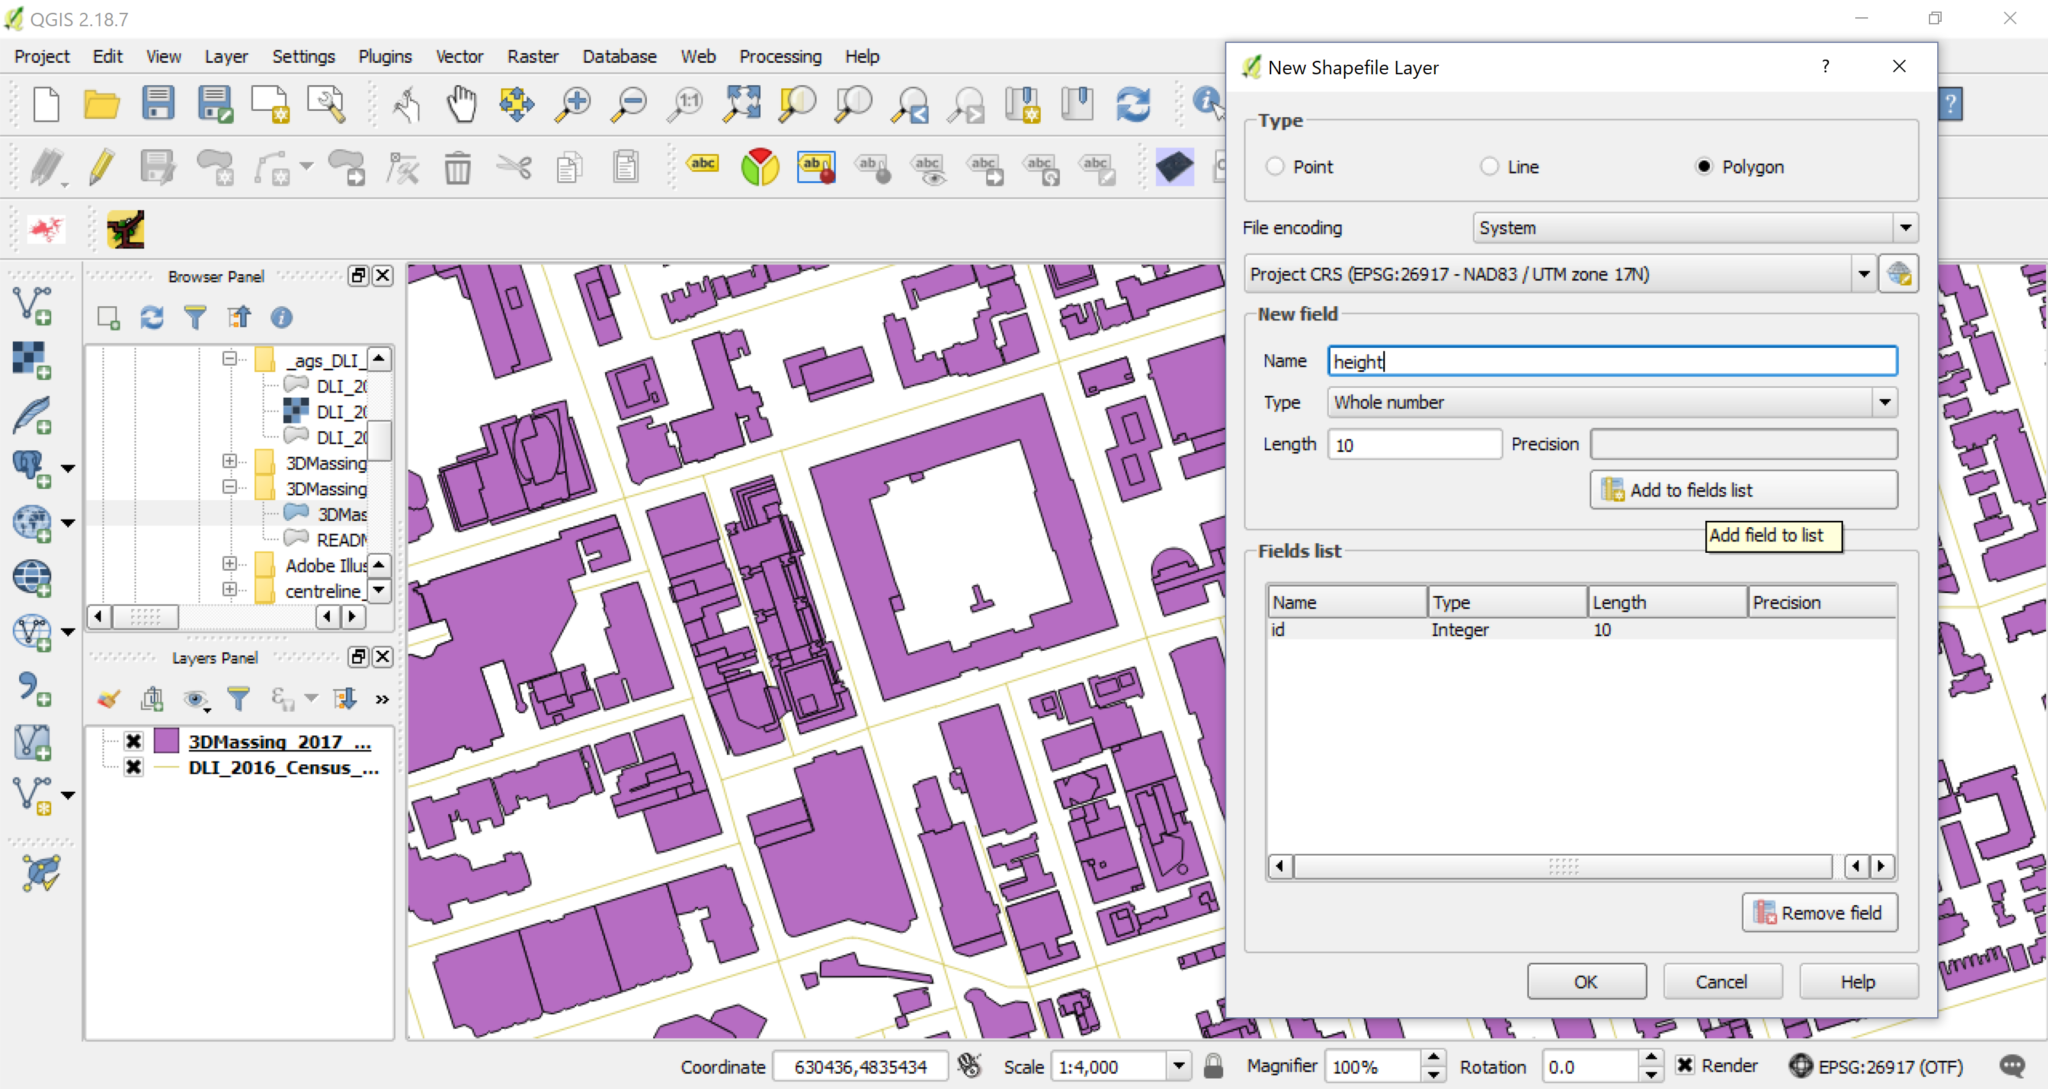 Creating 3D Cityscapes Using Open-Source GIS and Open Data | GIS2 at